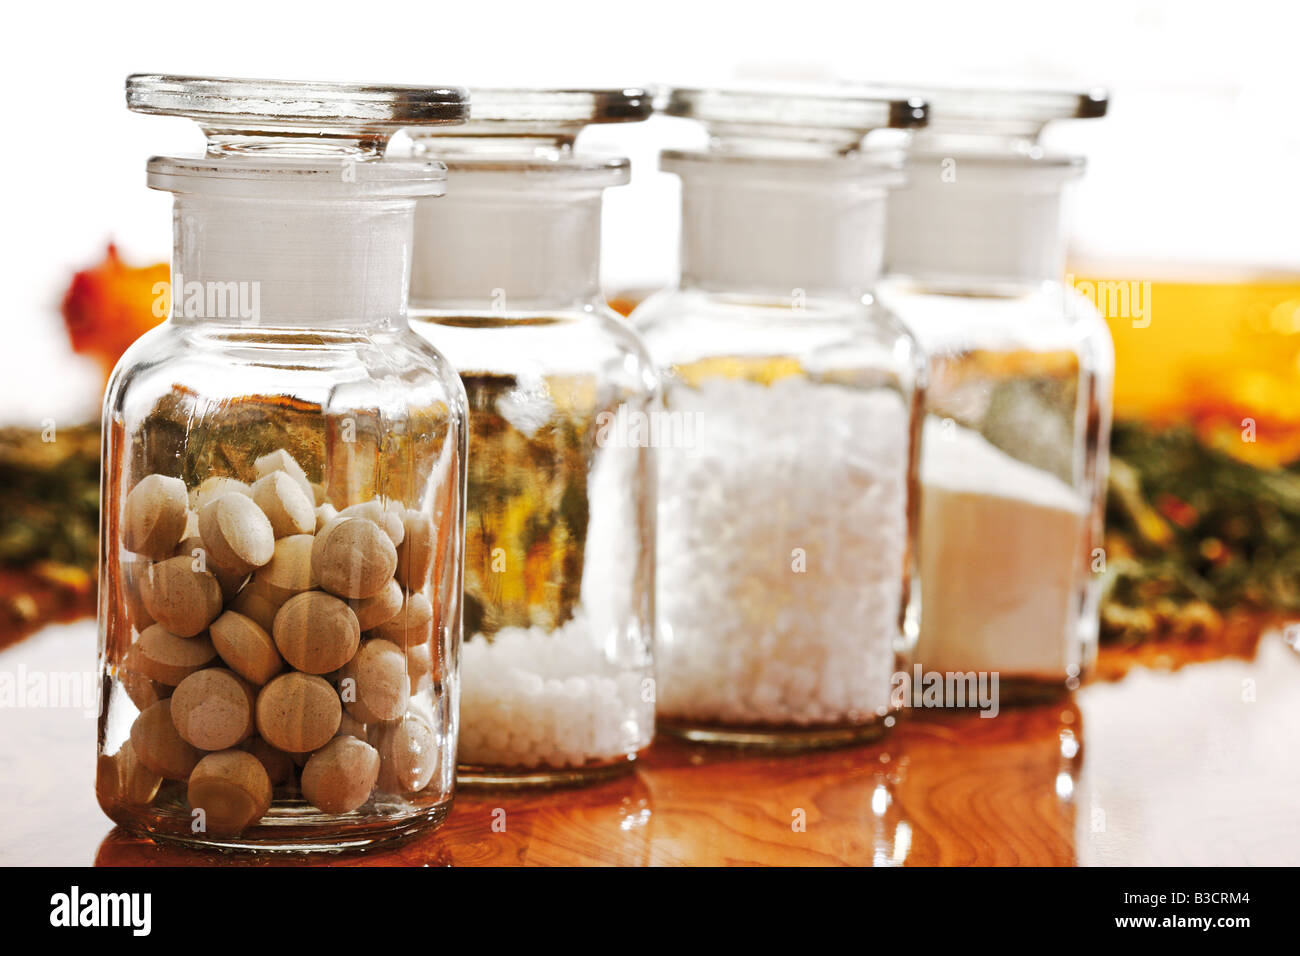 Apothecary flasks with Homoeopathic remedy, close-up - Stock Image